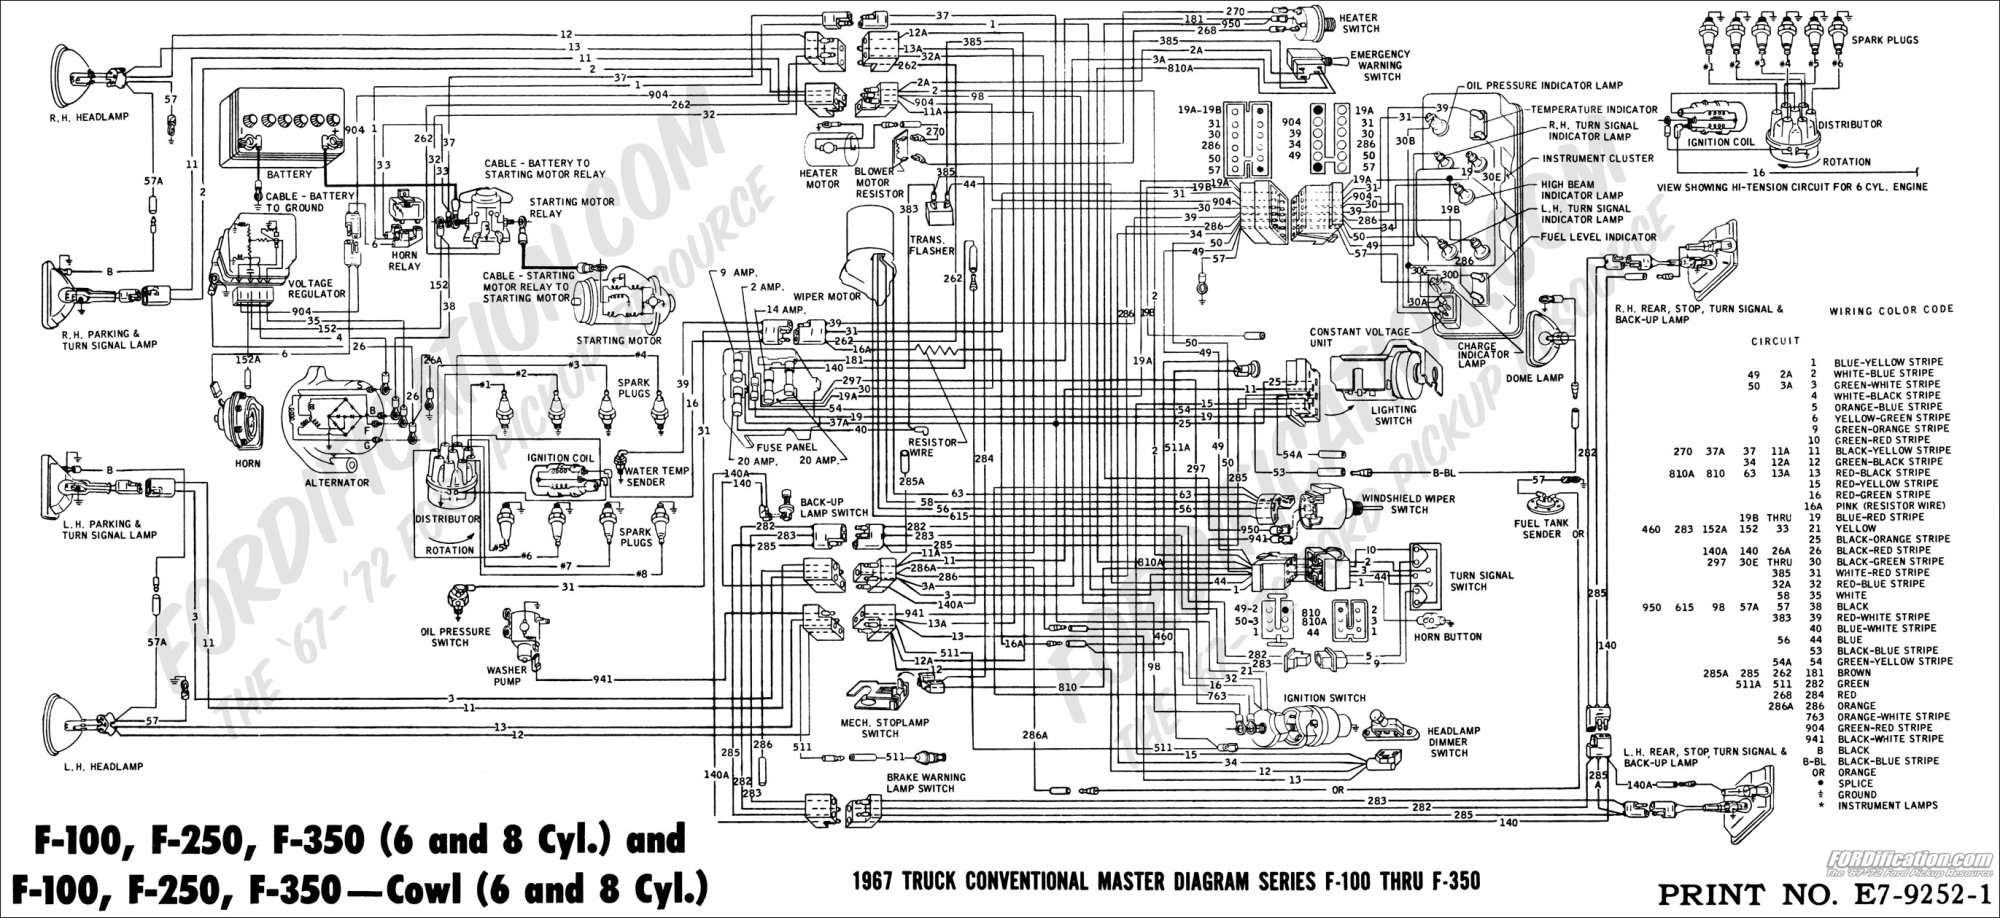 hight resolution of 93 ford e 150 ignition wiring diagram wiring diagram host 1996 ford e 150 ignition wiring